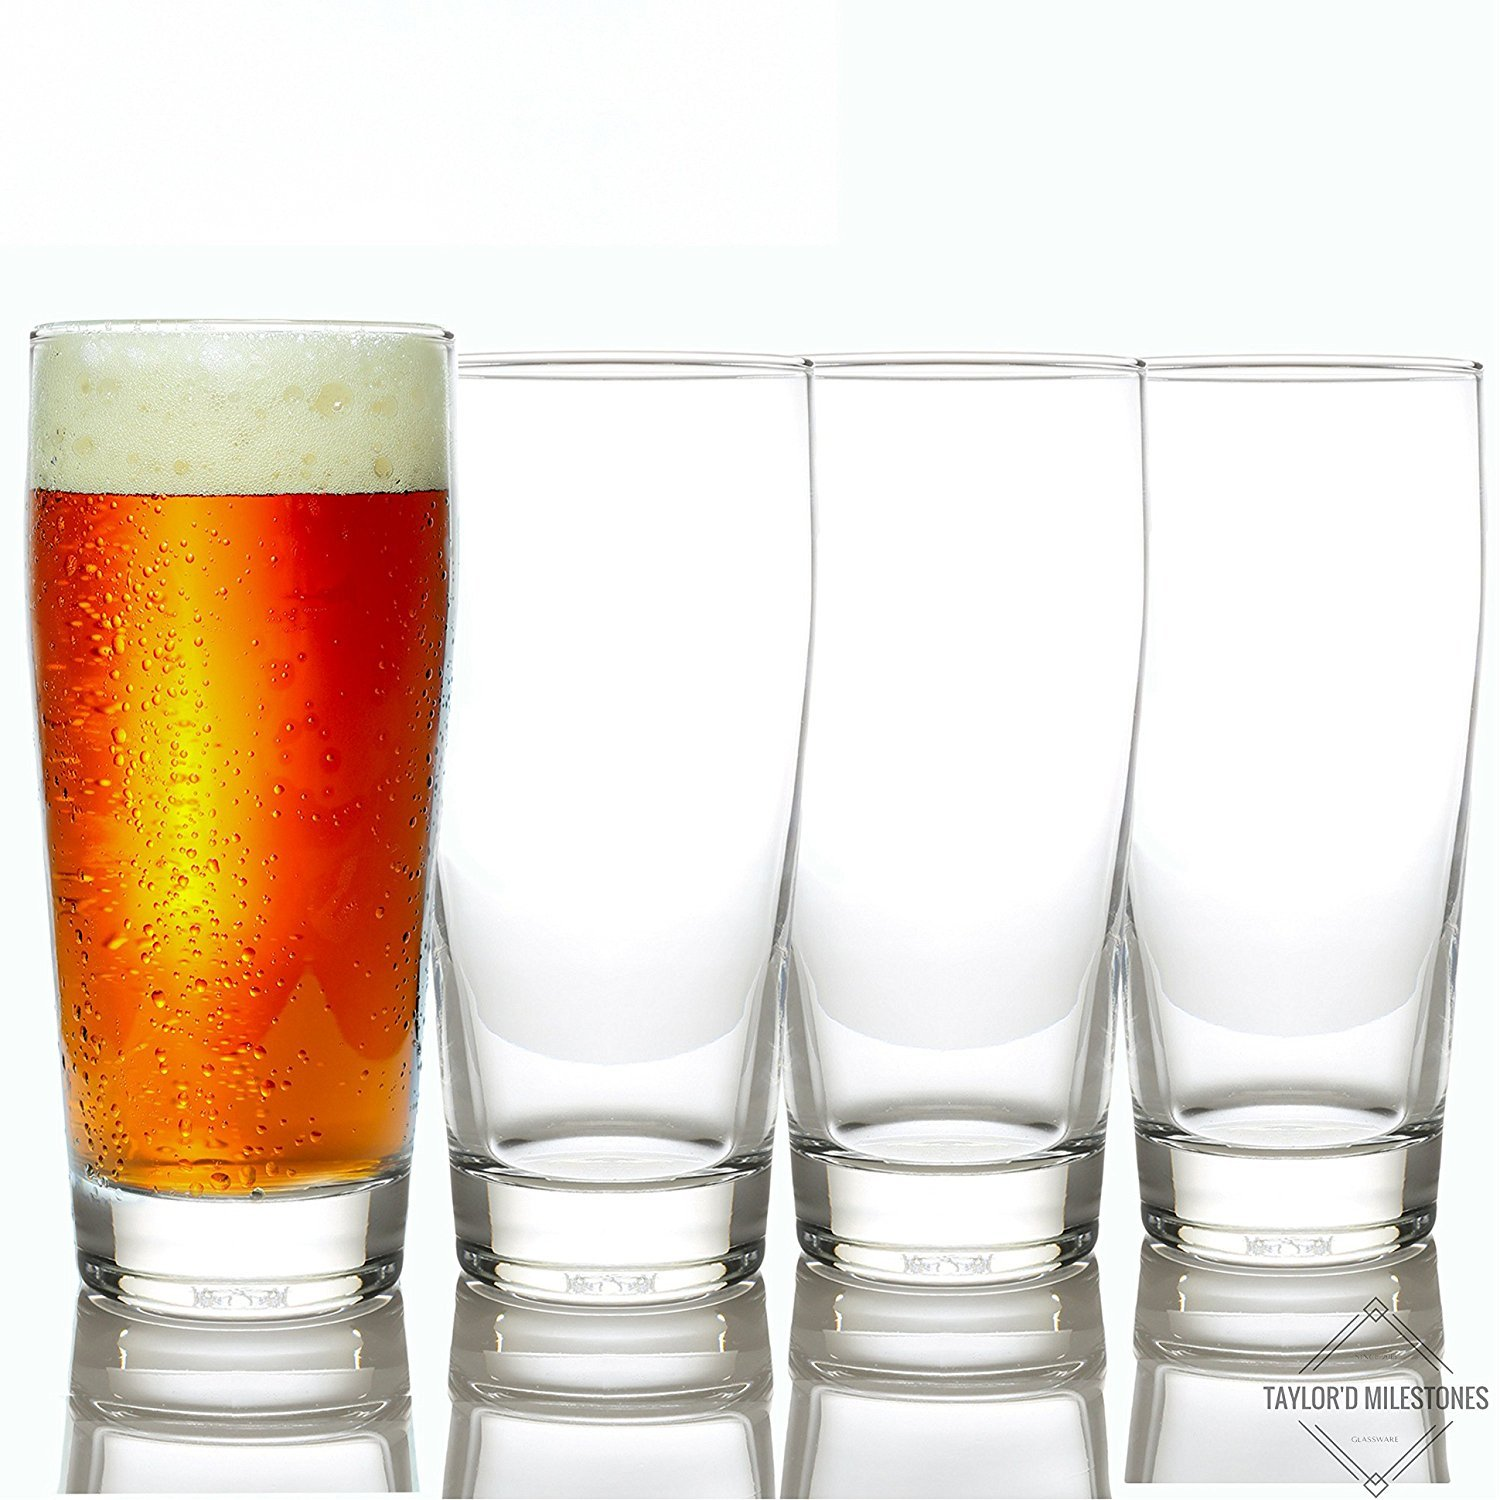 Taylor'd Milestones Premium Beer Glasses - 16 oz Stackable Set of 4, Heavy Base for Stability and Freshness, Durable Glassware for Everyday Use & Home Bars.